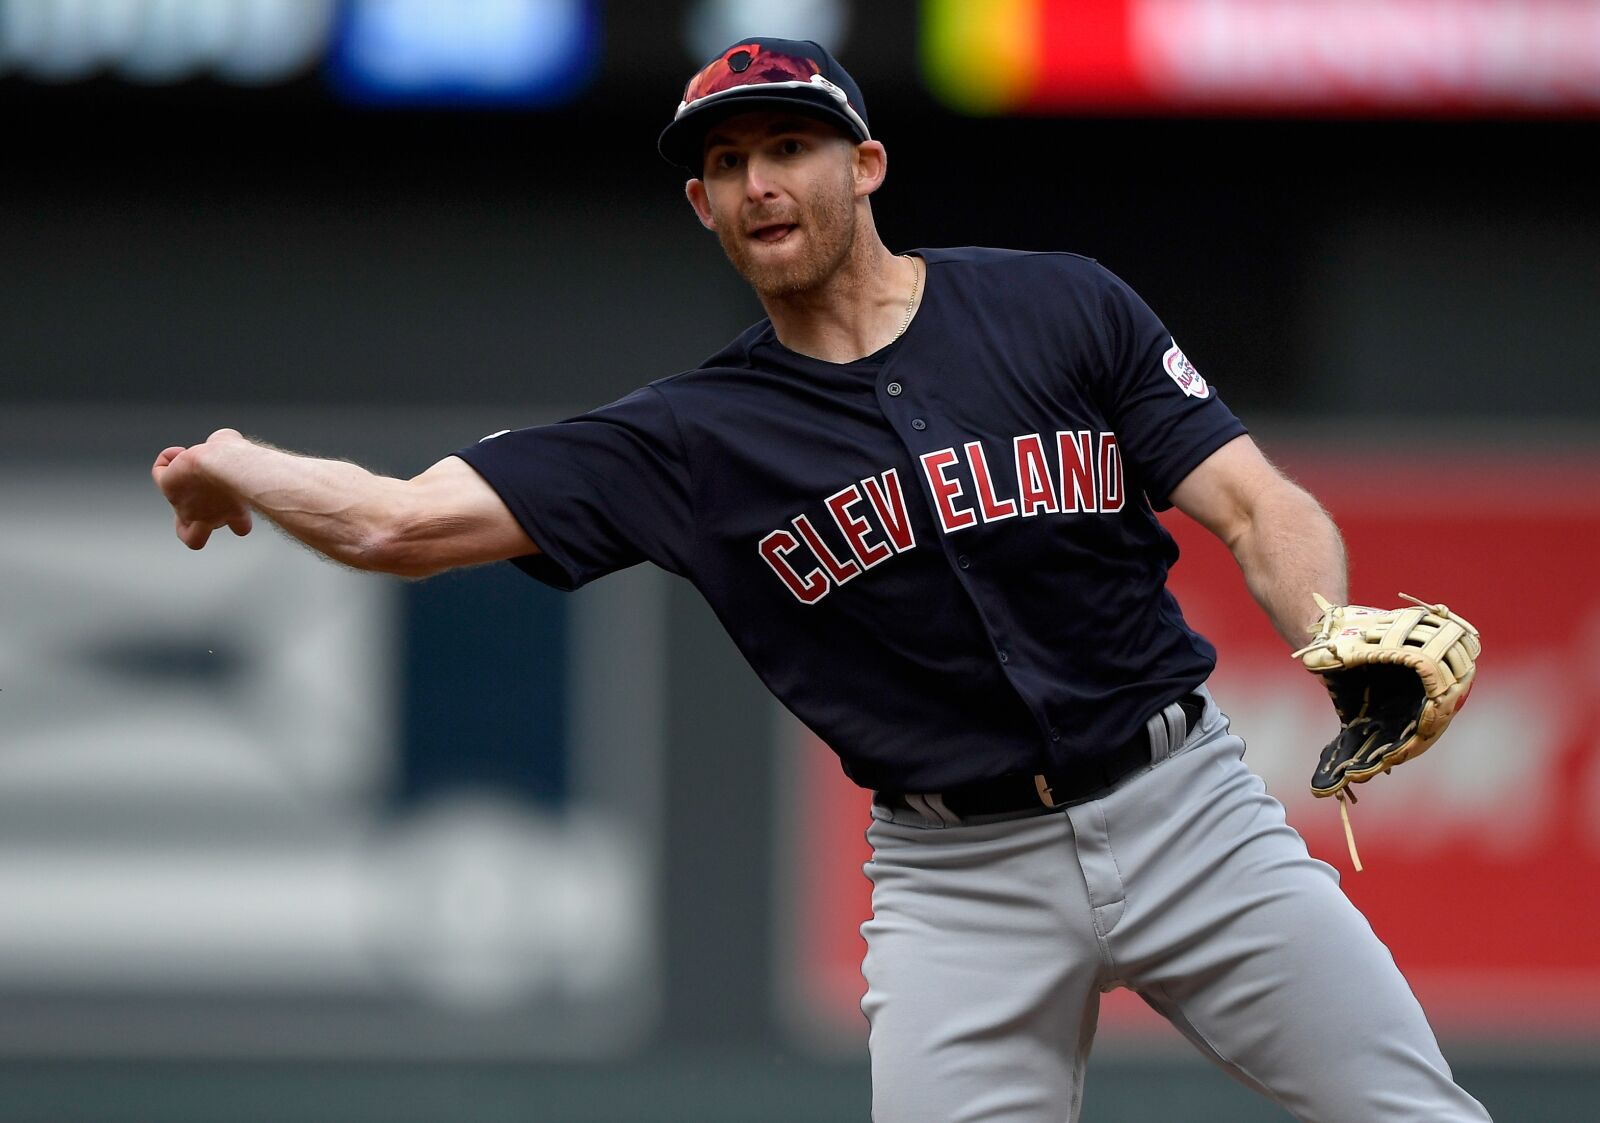 Cleveland Indians: A look back at the 2019 Opening Day lineup